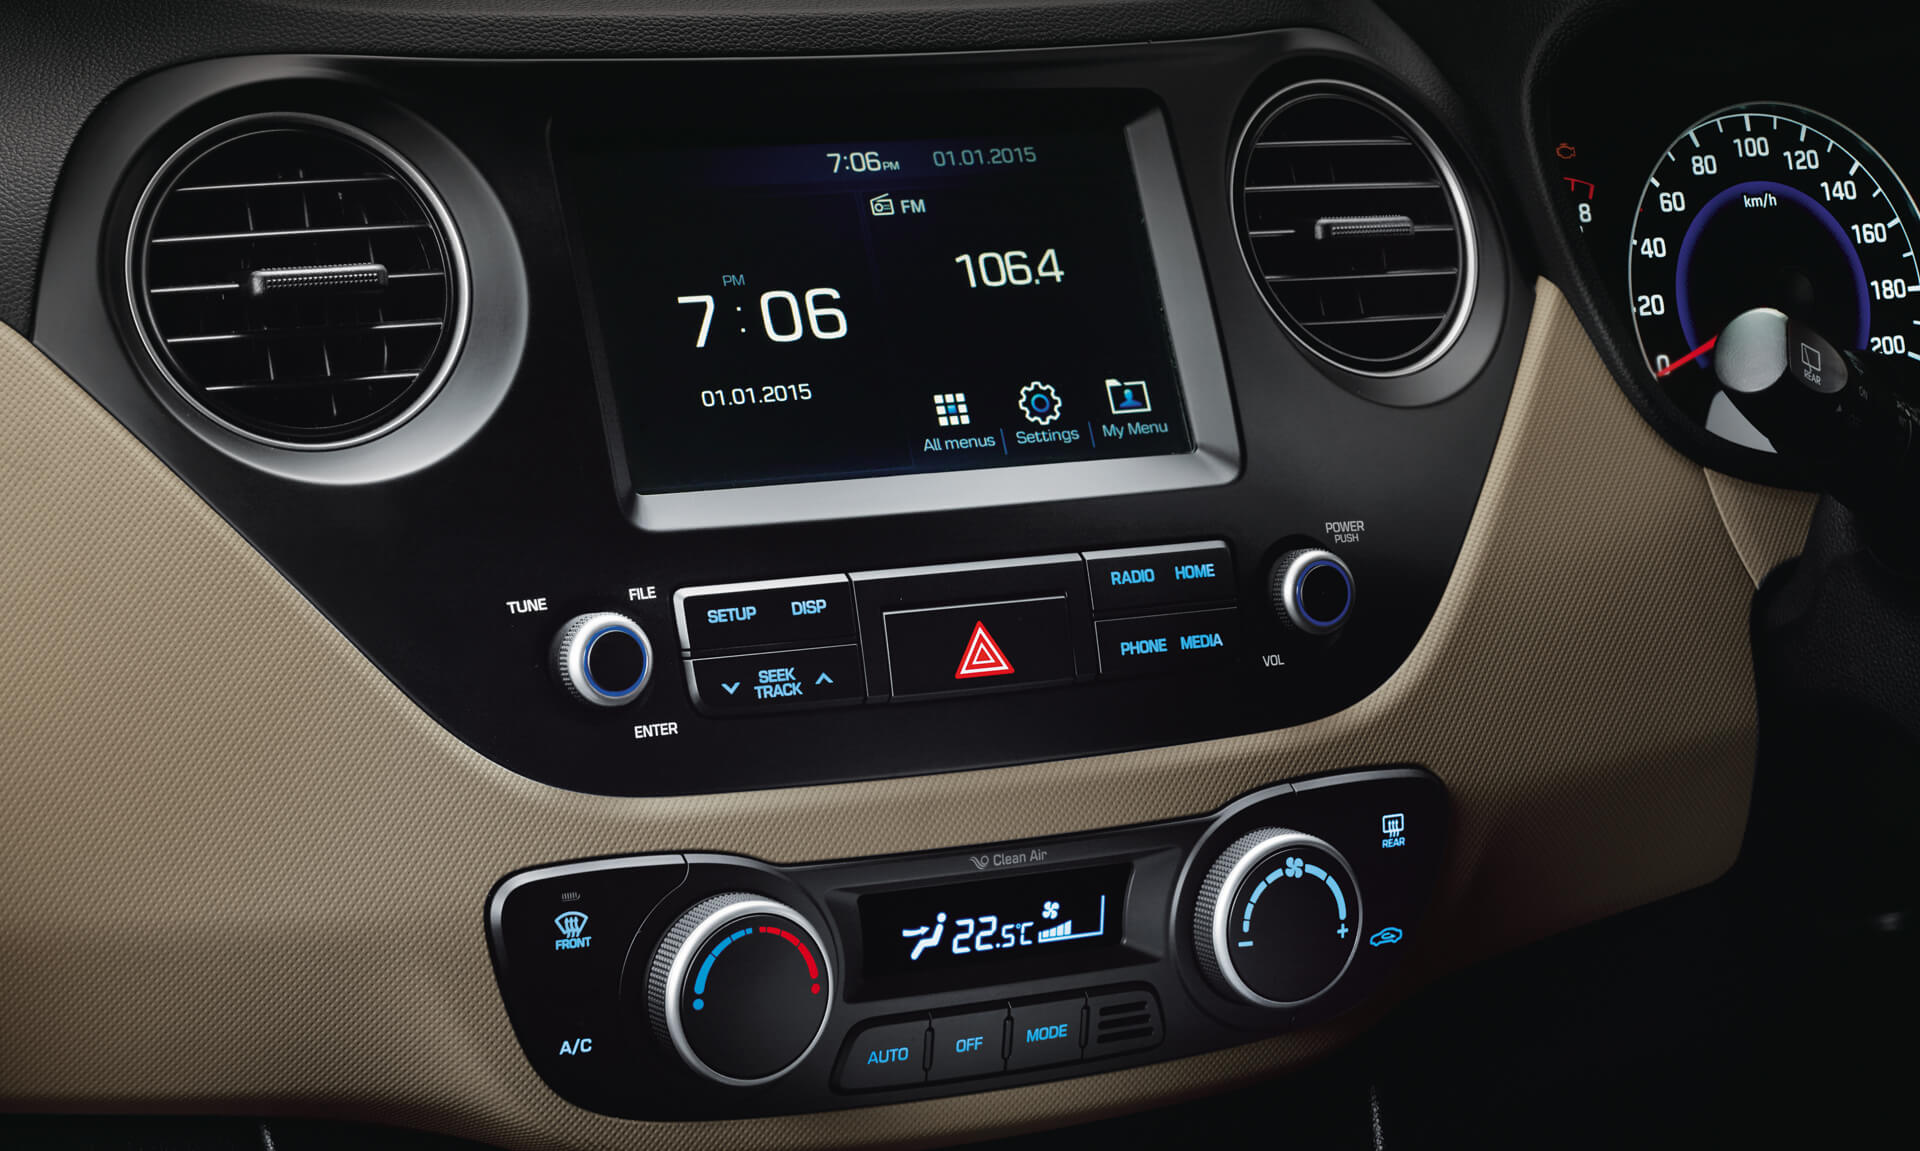 Hyundai Grand i10 Car Interior Feature - Infotainment System